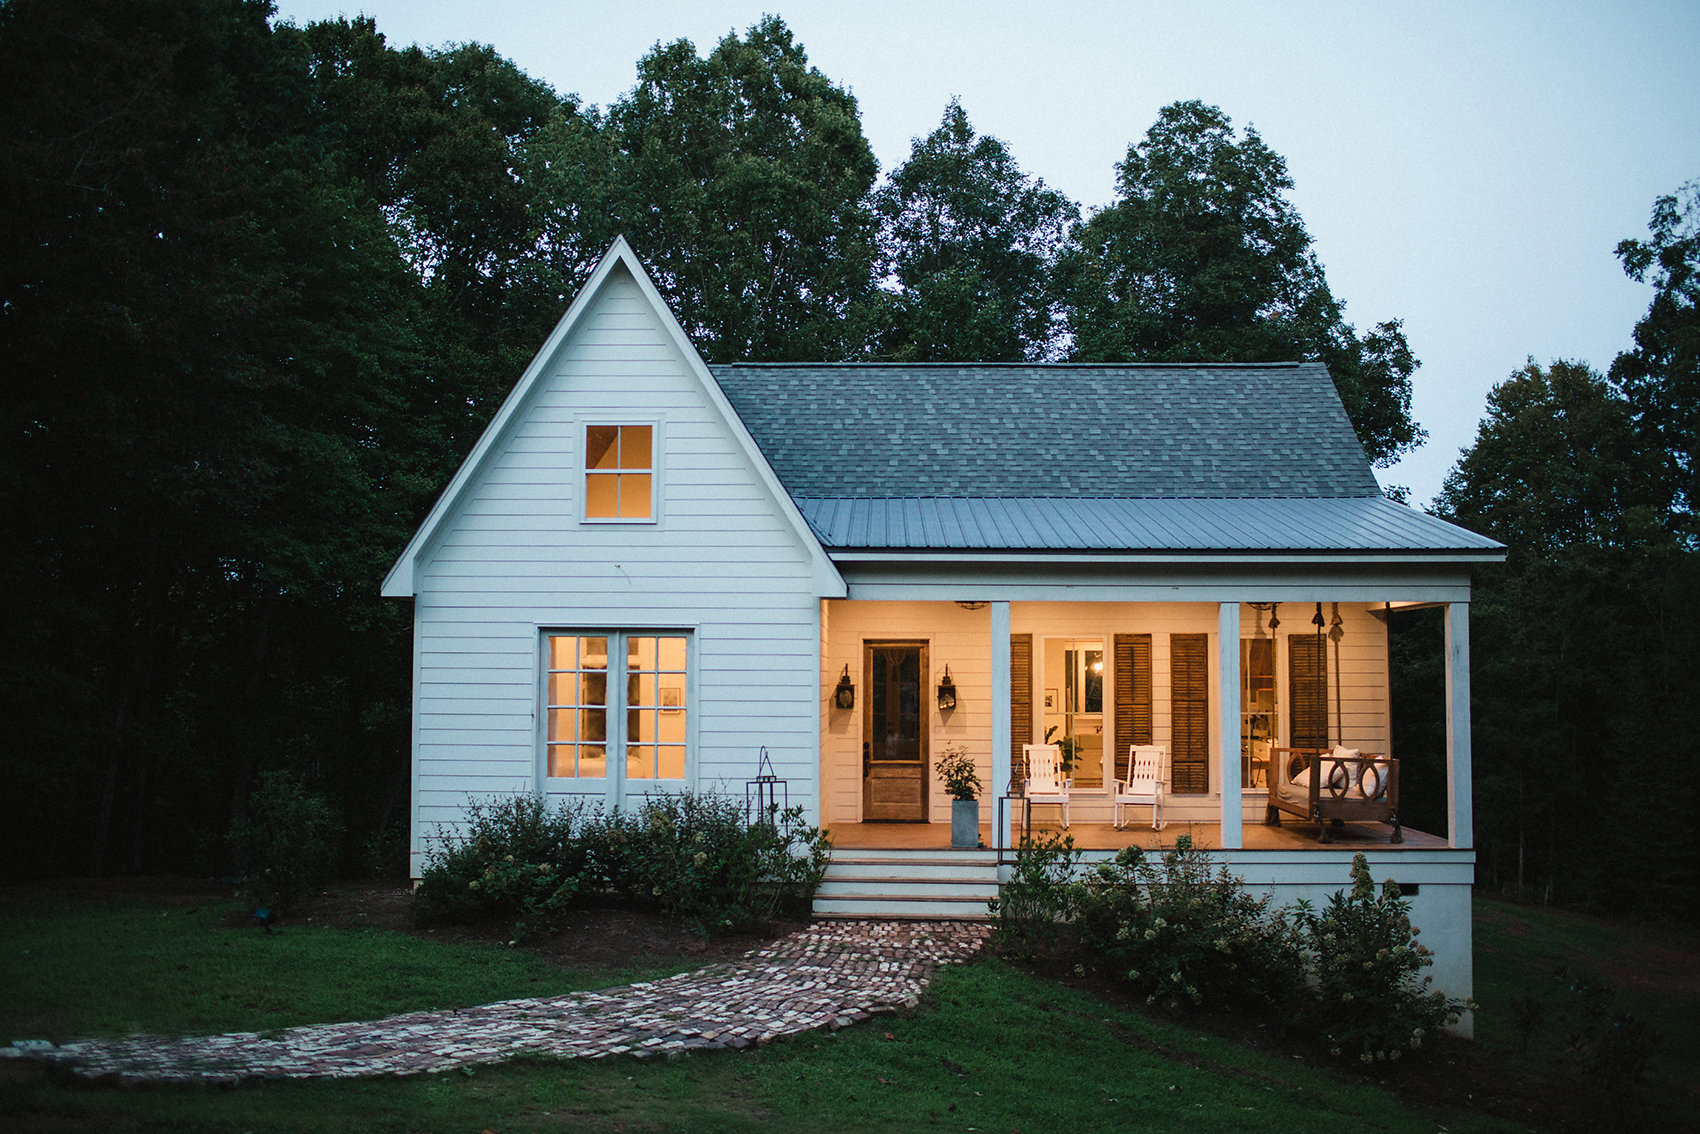 A Mississippi Home That Gave New Life to an Old Farmhouse